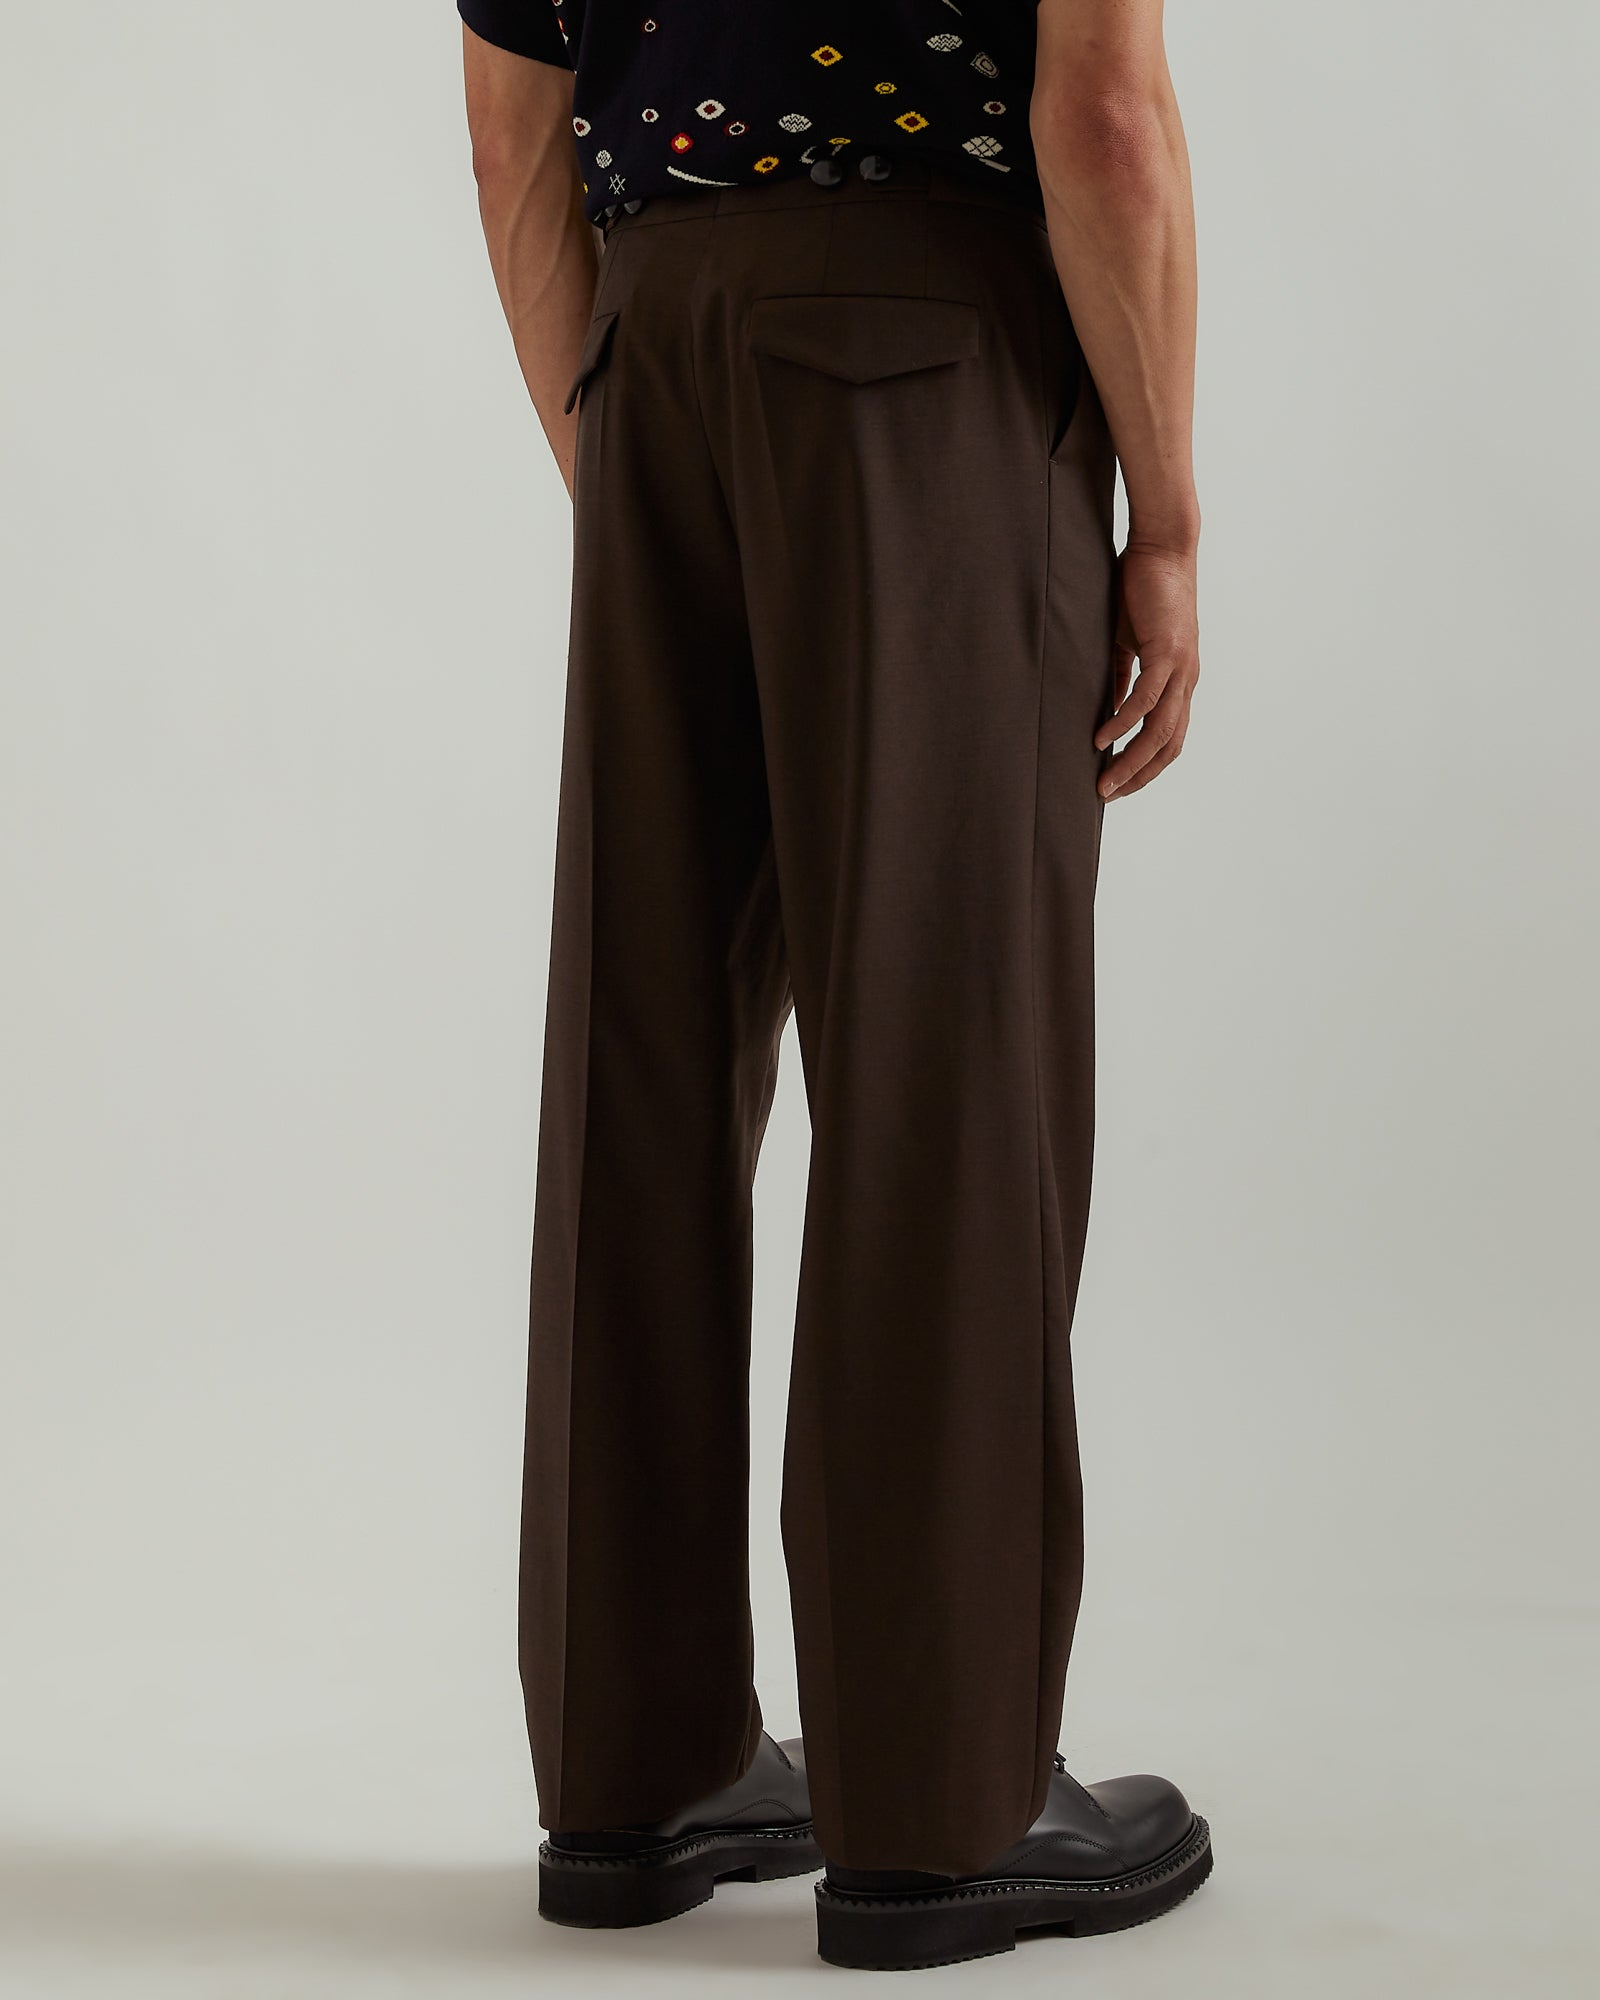 Villemo Trousers in Memorial Brown